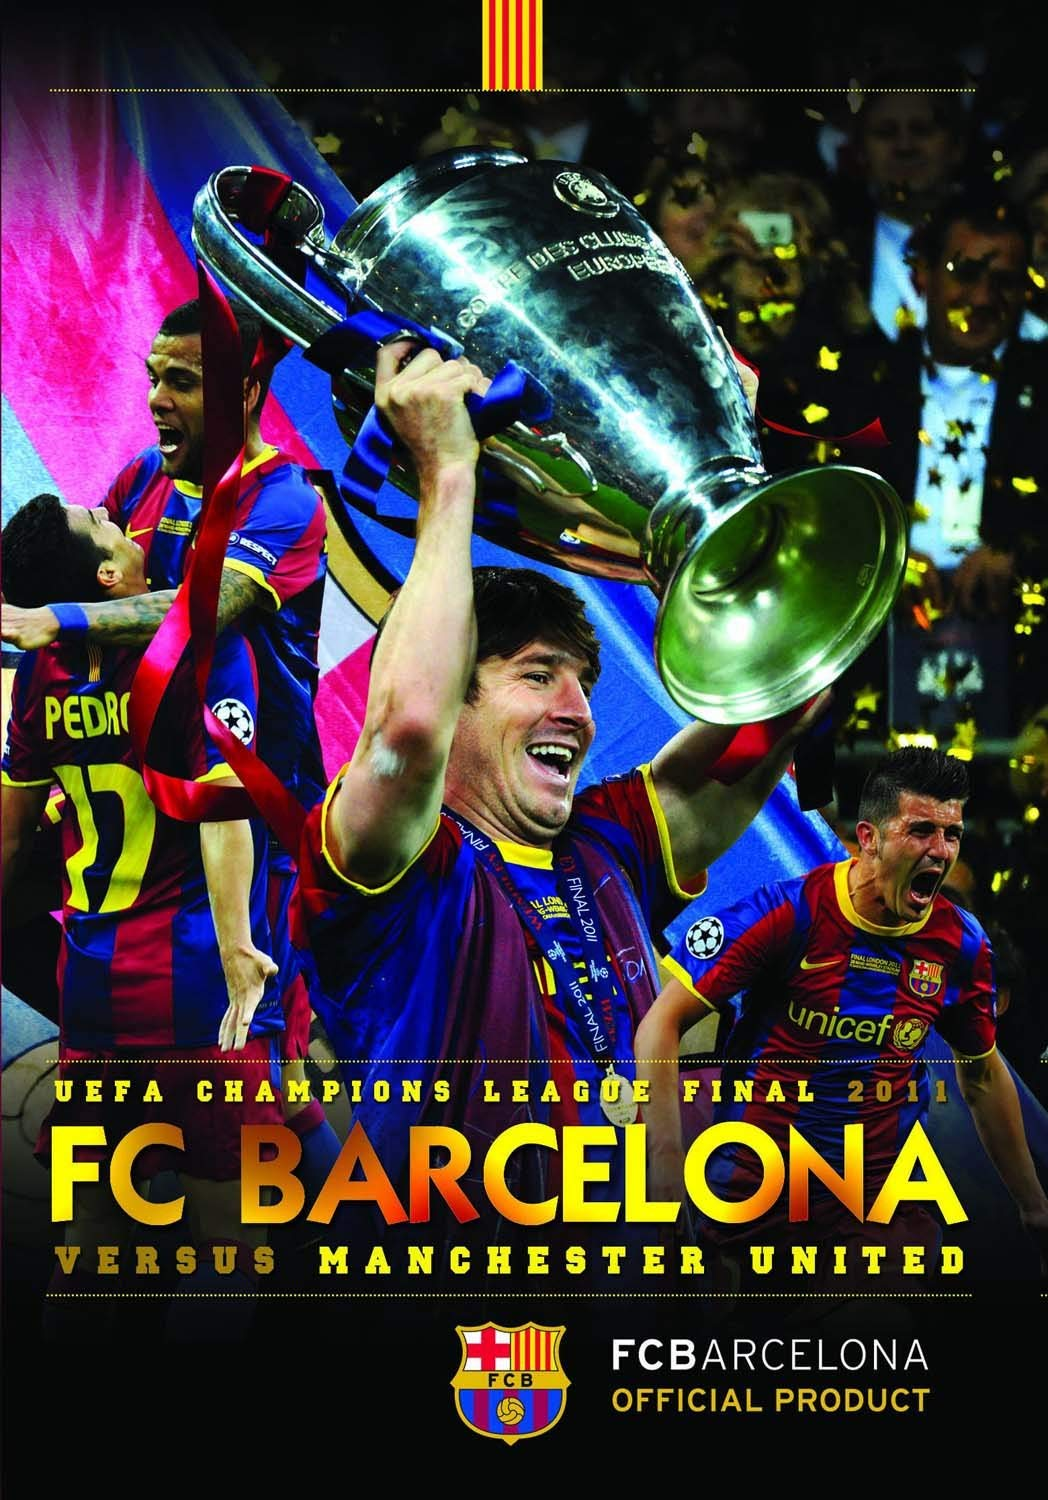 UEFA Champions League Final 2011 FC Barcelona 3 Manchester United ...